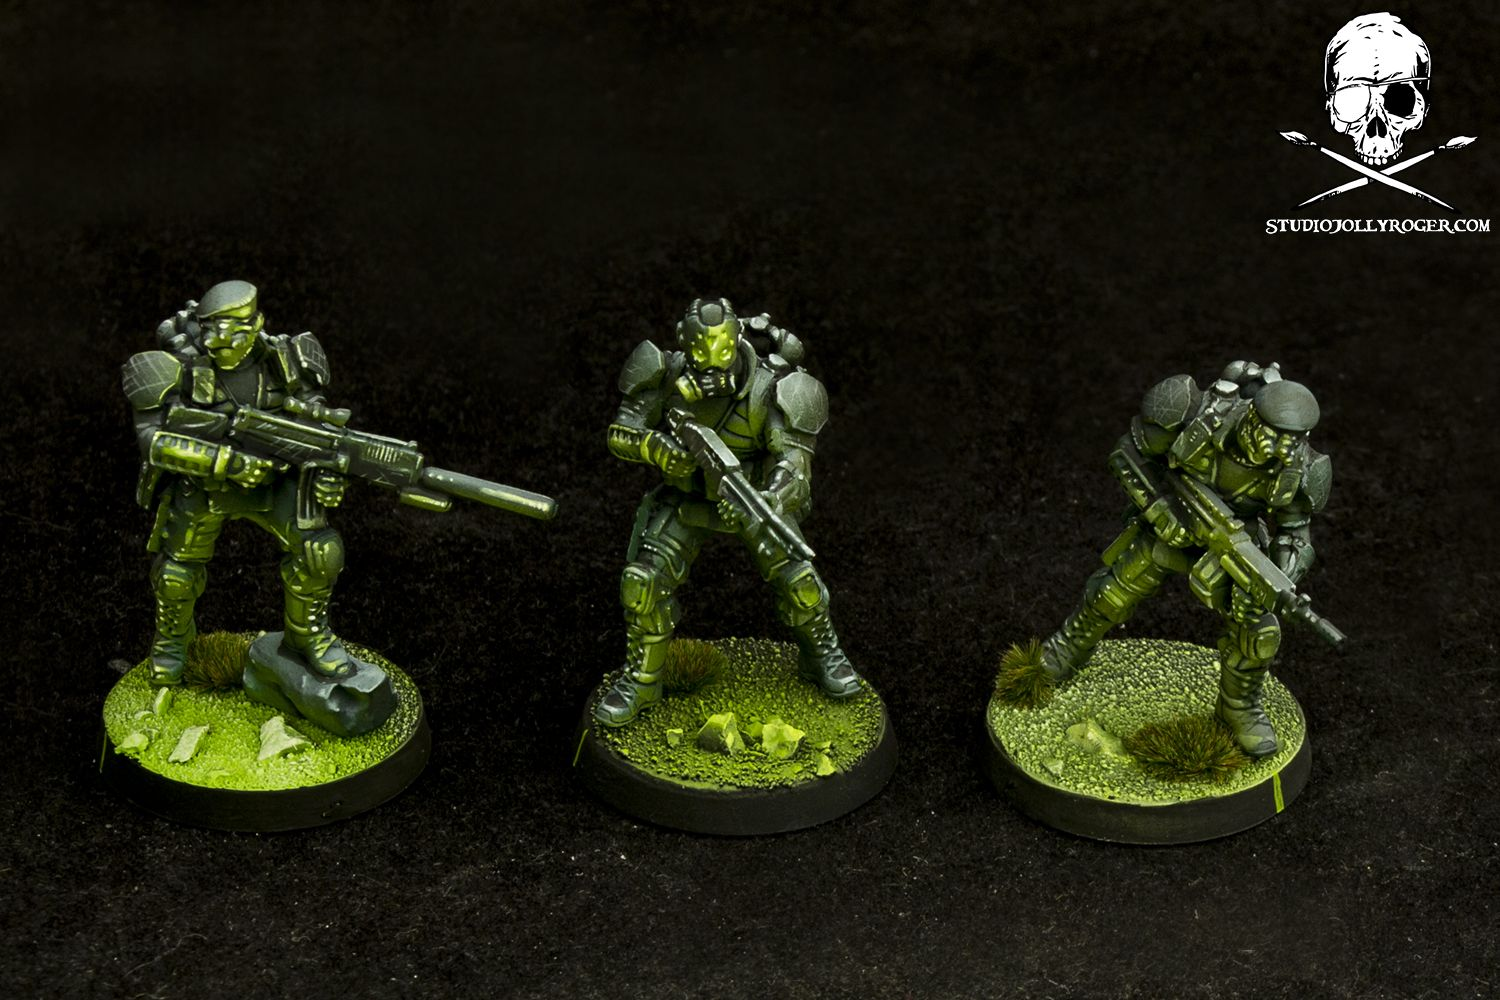 Alex's Night Vision Ariadna Miniature painting service